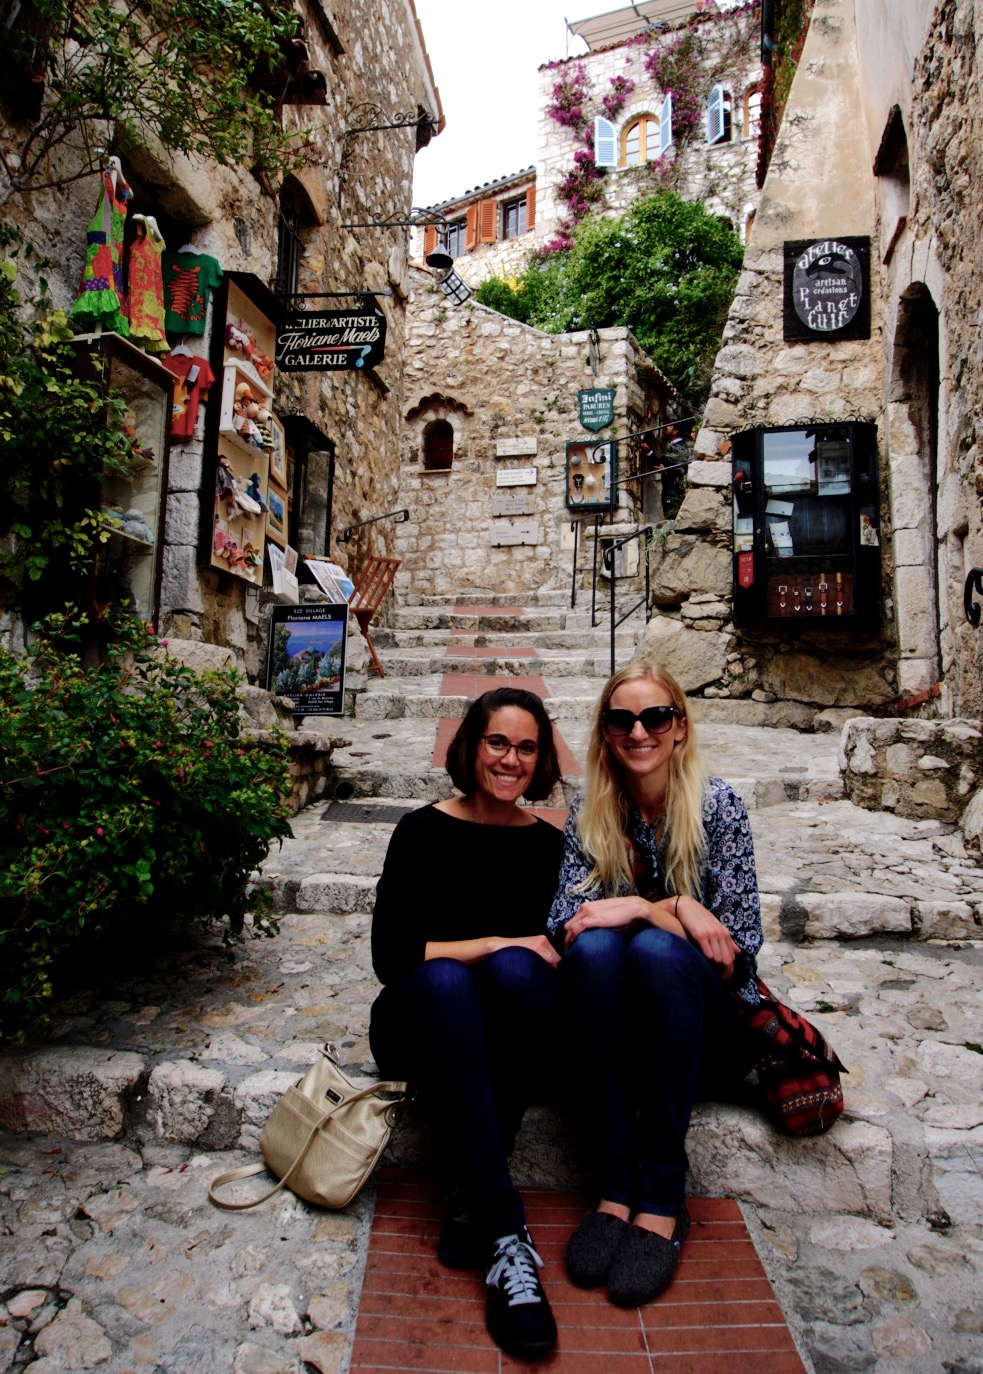 Streets of Eze